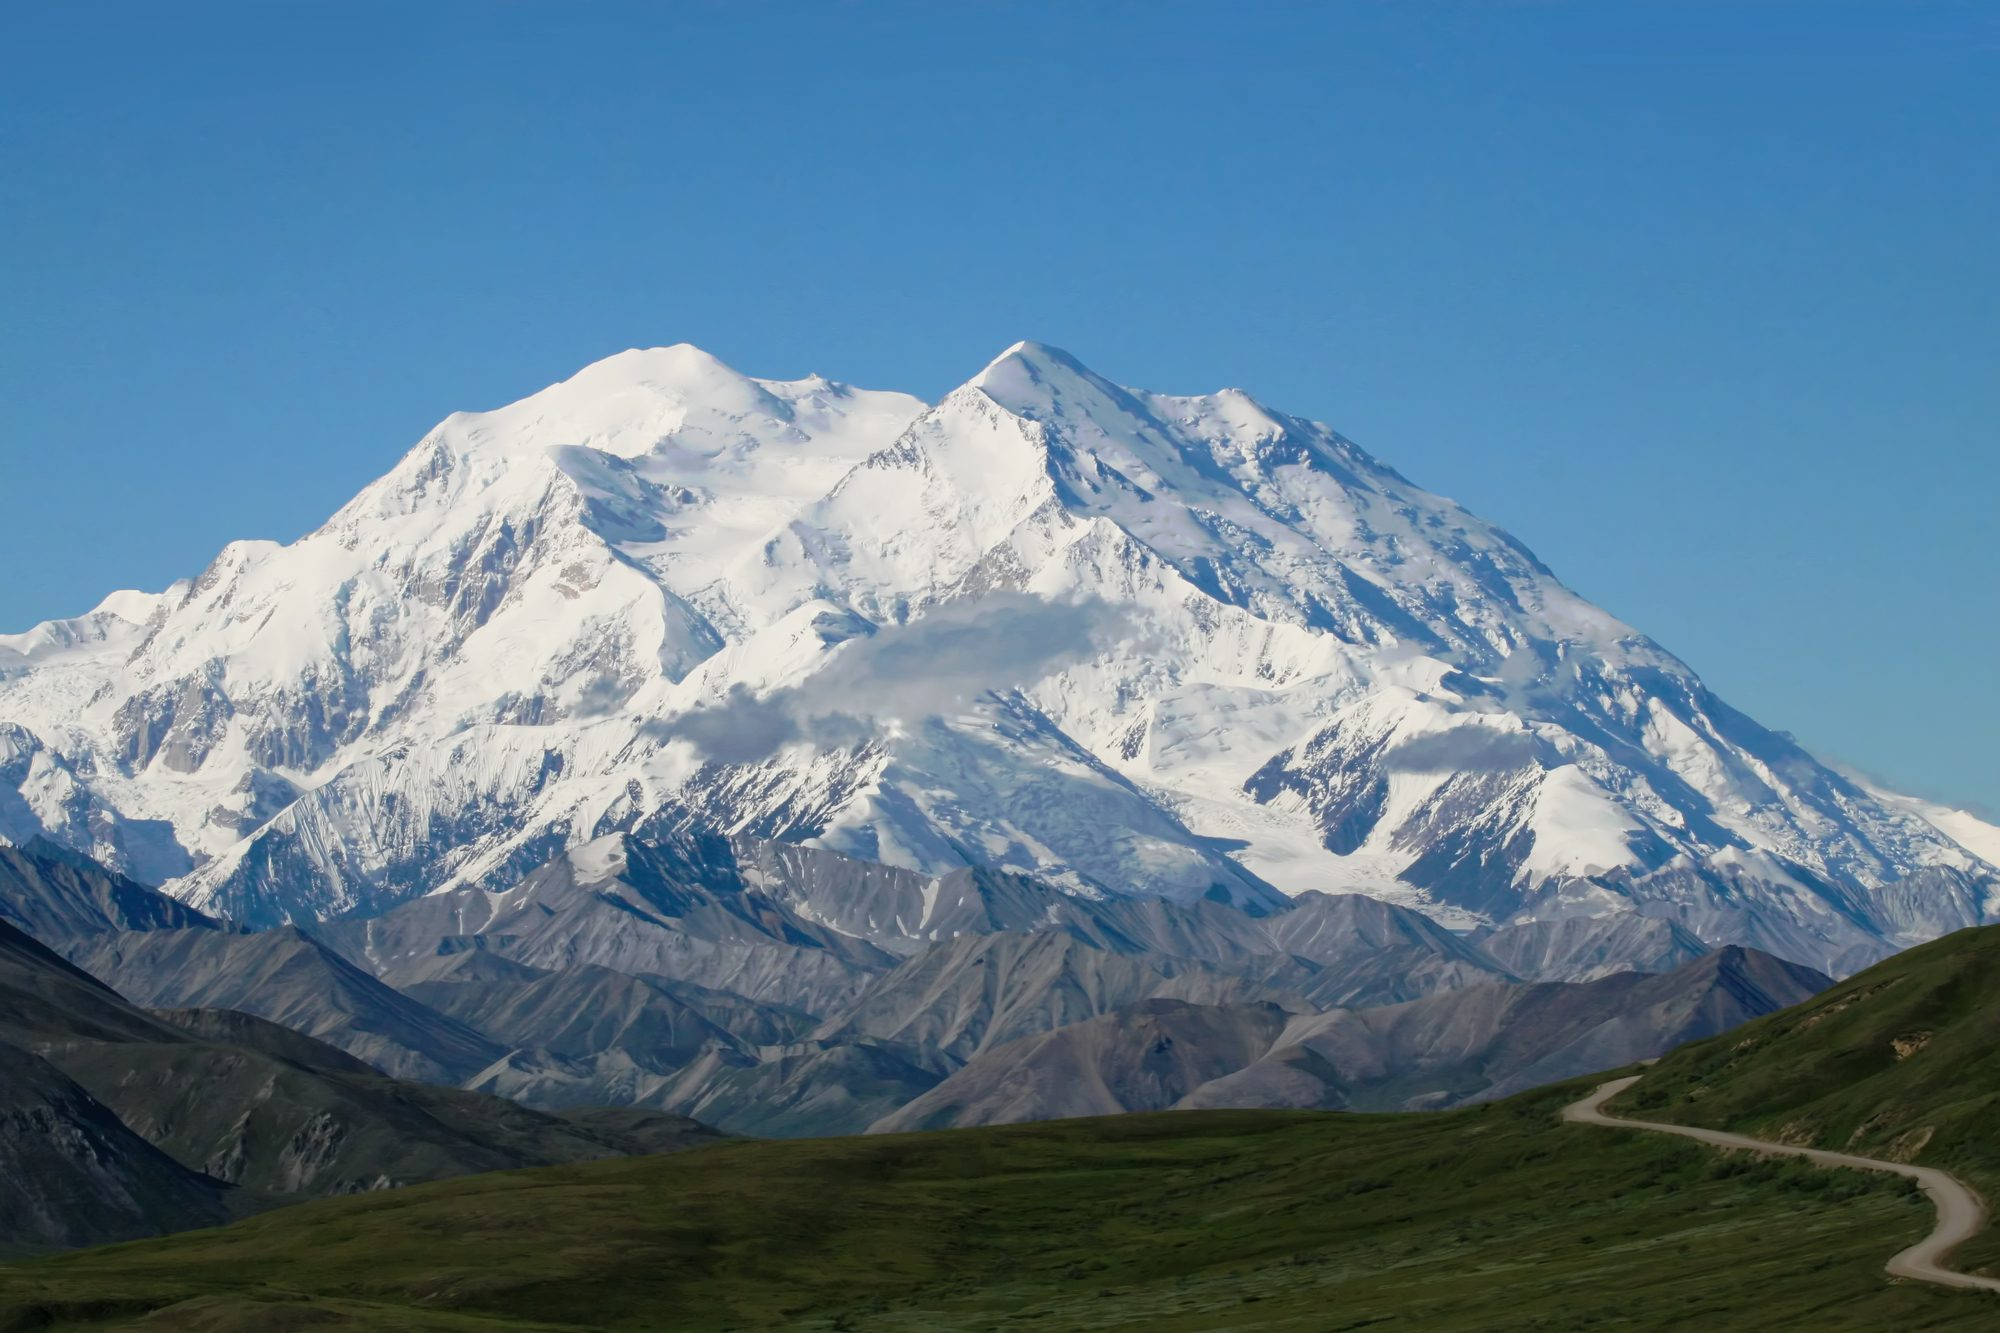 Denali Mountain, formerly known at Mount McKinle